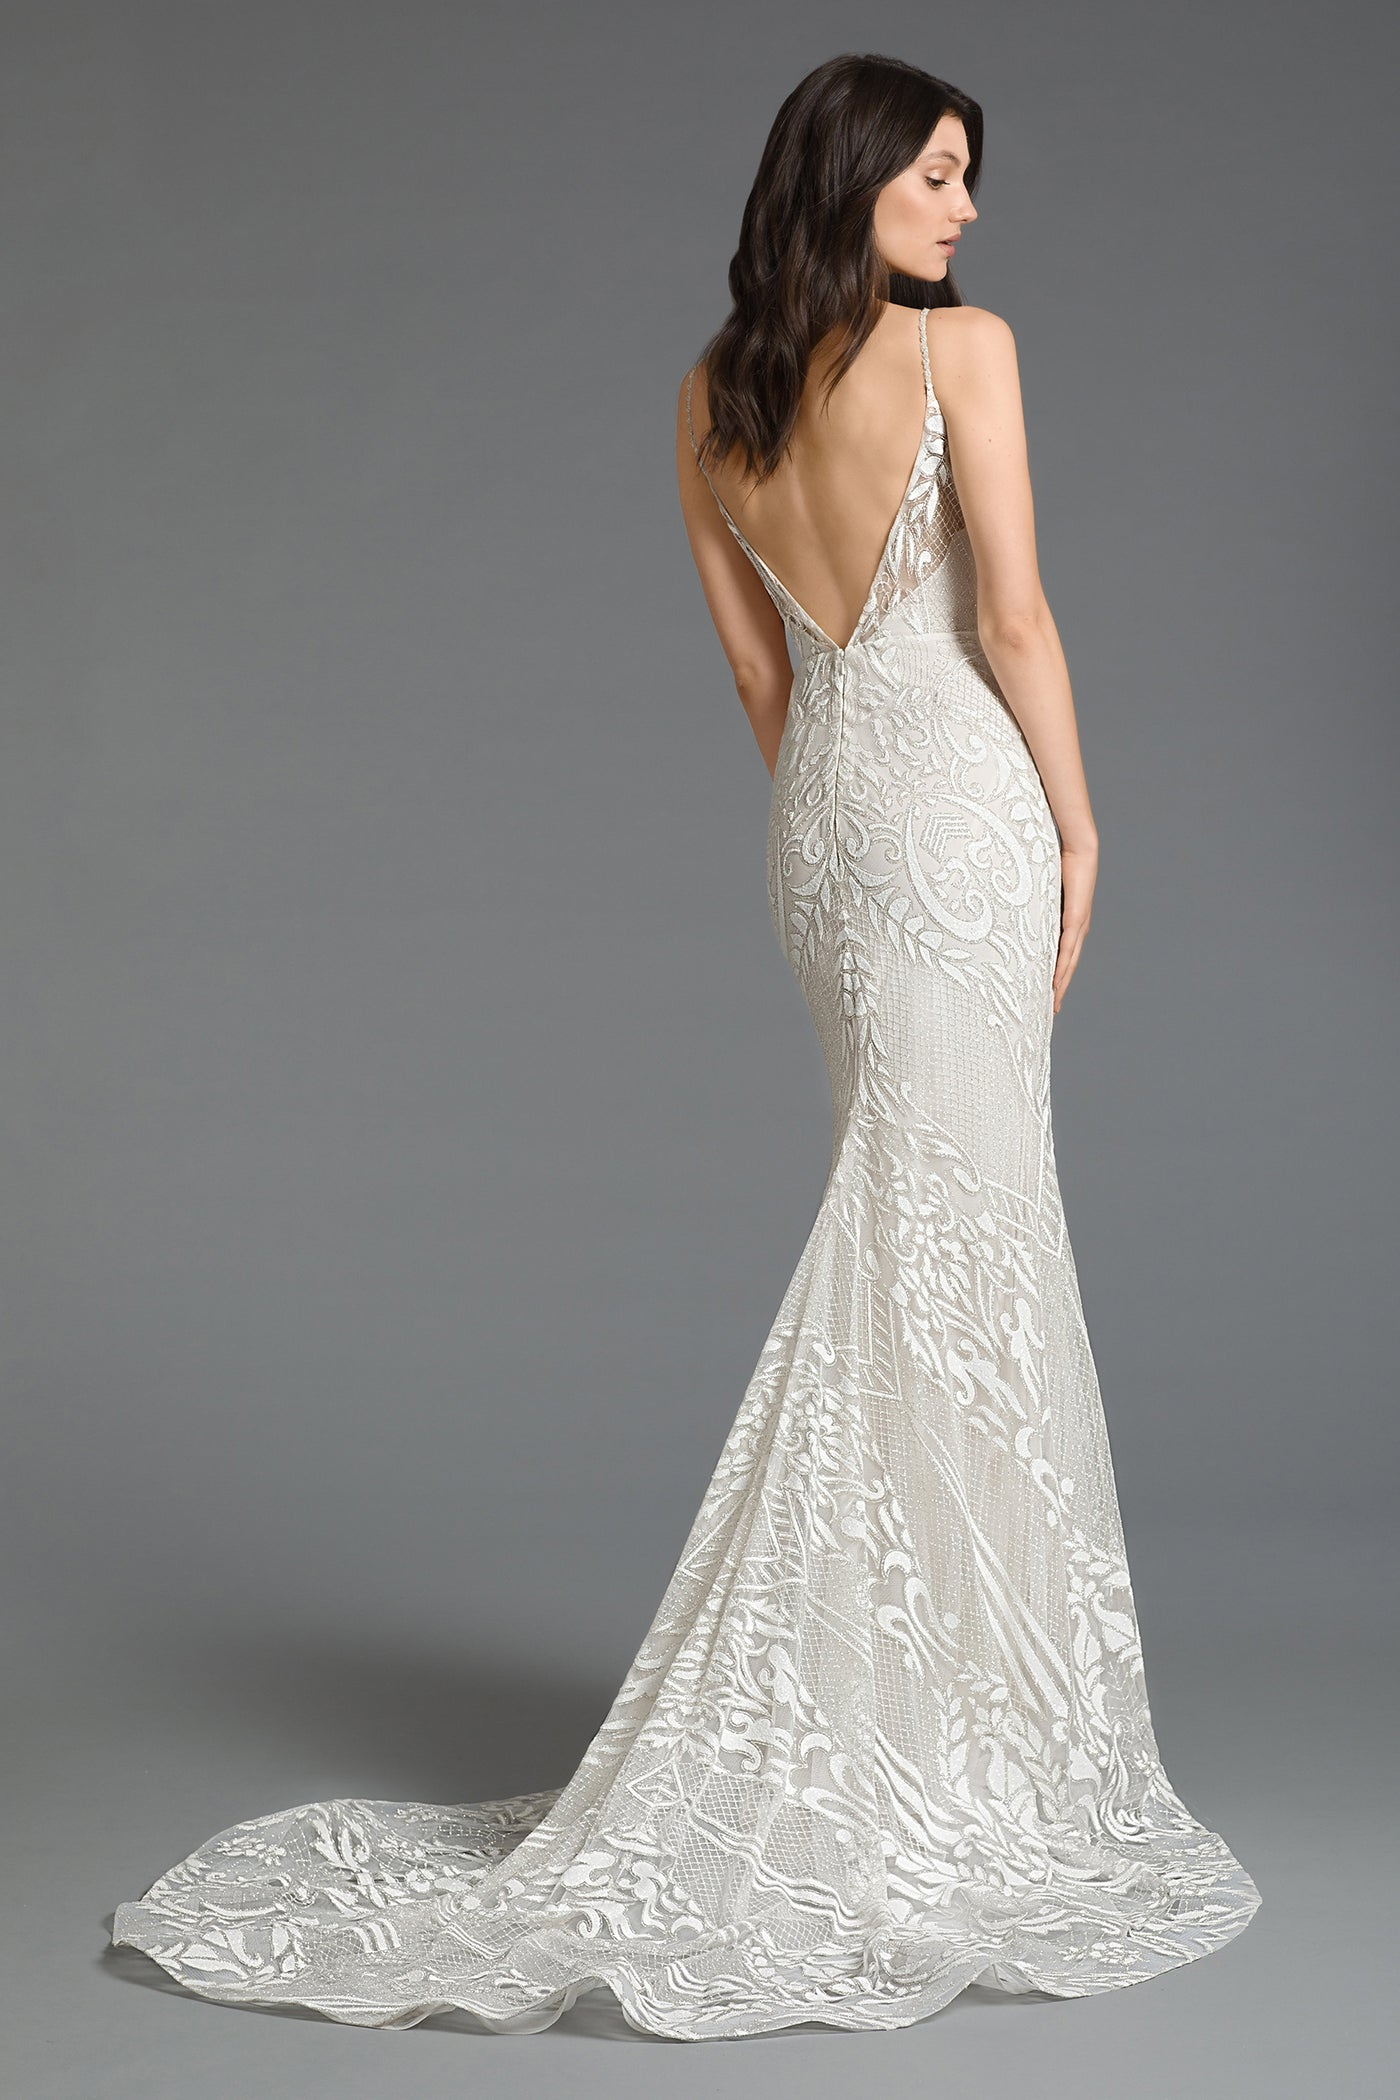 Sofia - New, Gown, Tara Keely by Lazaro - Eternal Bridal